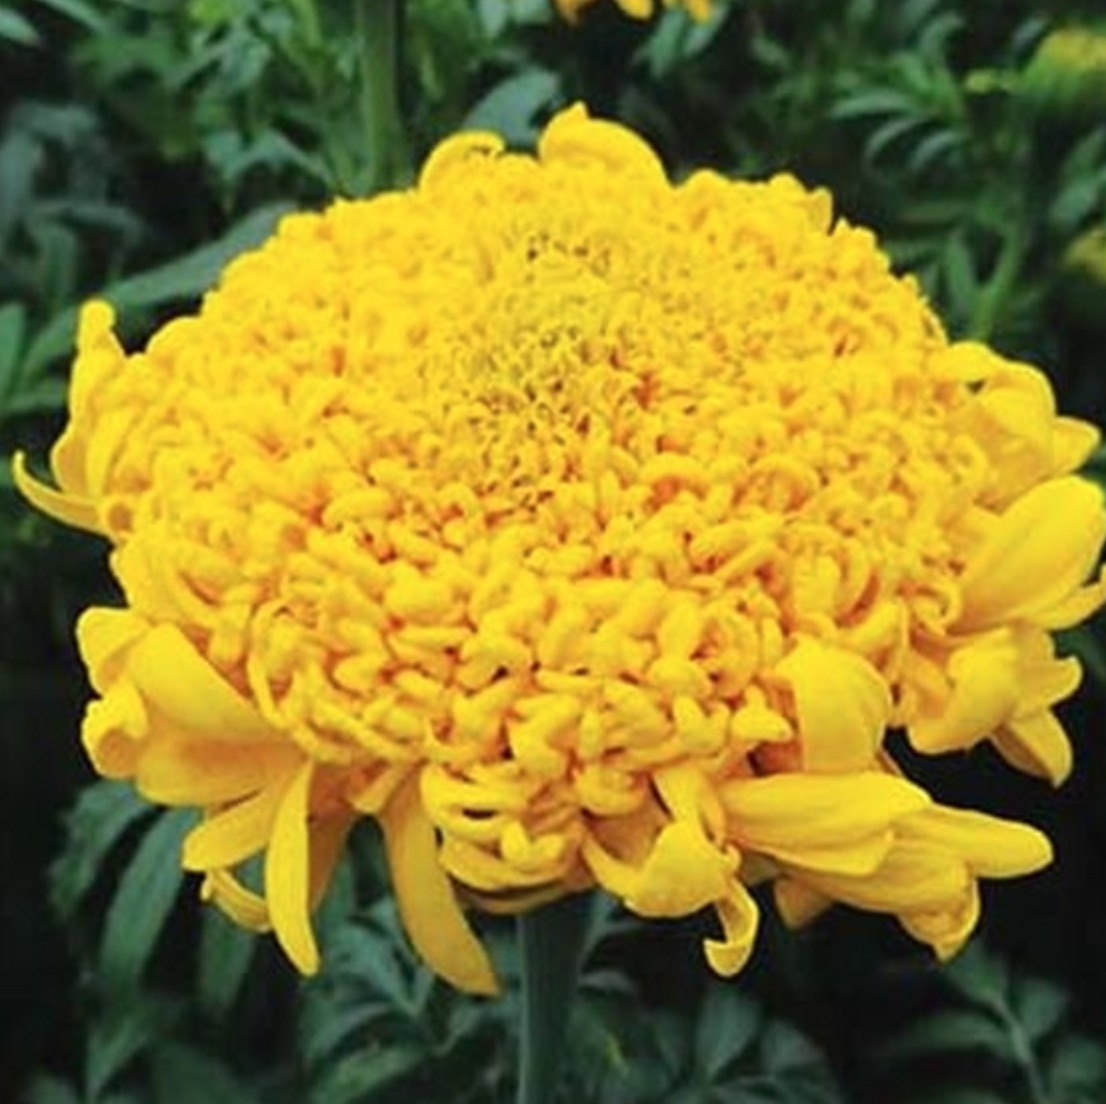 Plants that Love Acidic Soil Mission Giant Yellow Marigold #Perennials #AcidLovingPerennials #AcidLovingPlants #Gardening #AcidicSoil